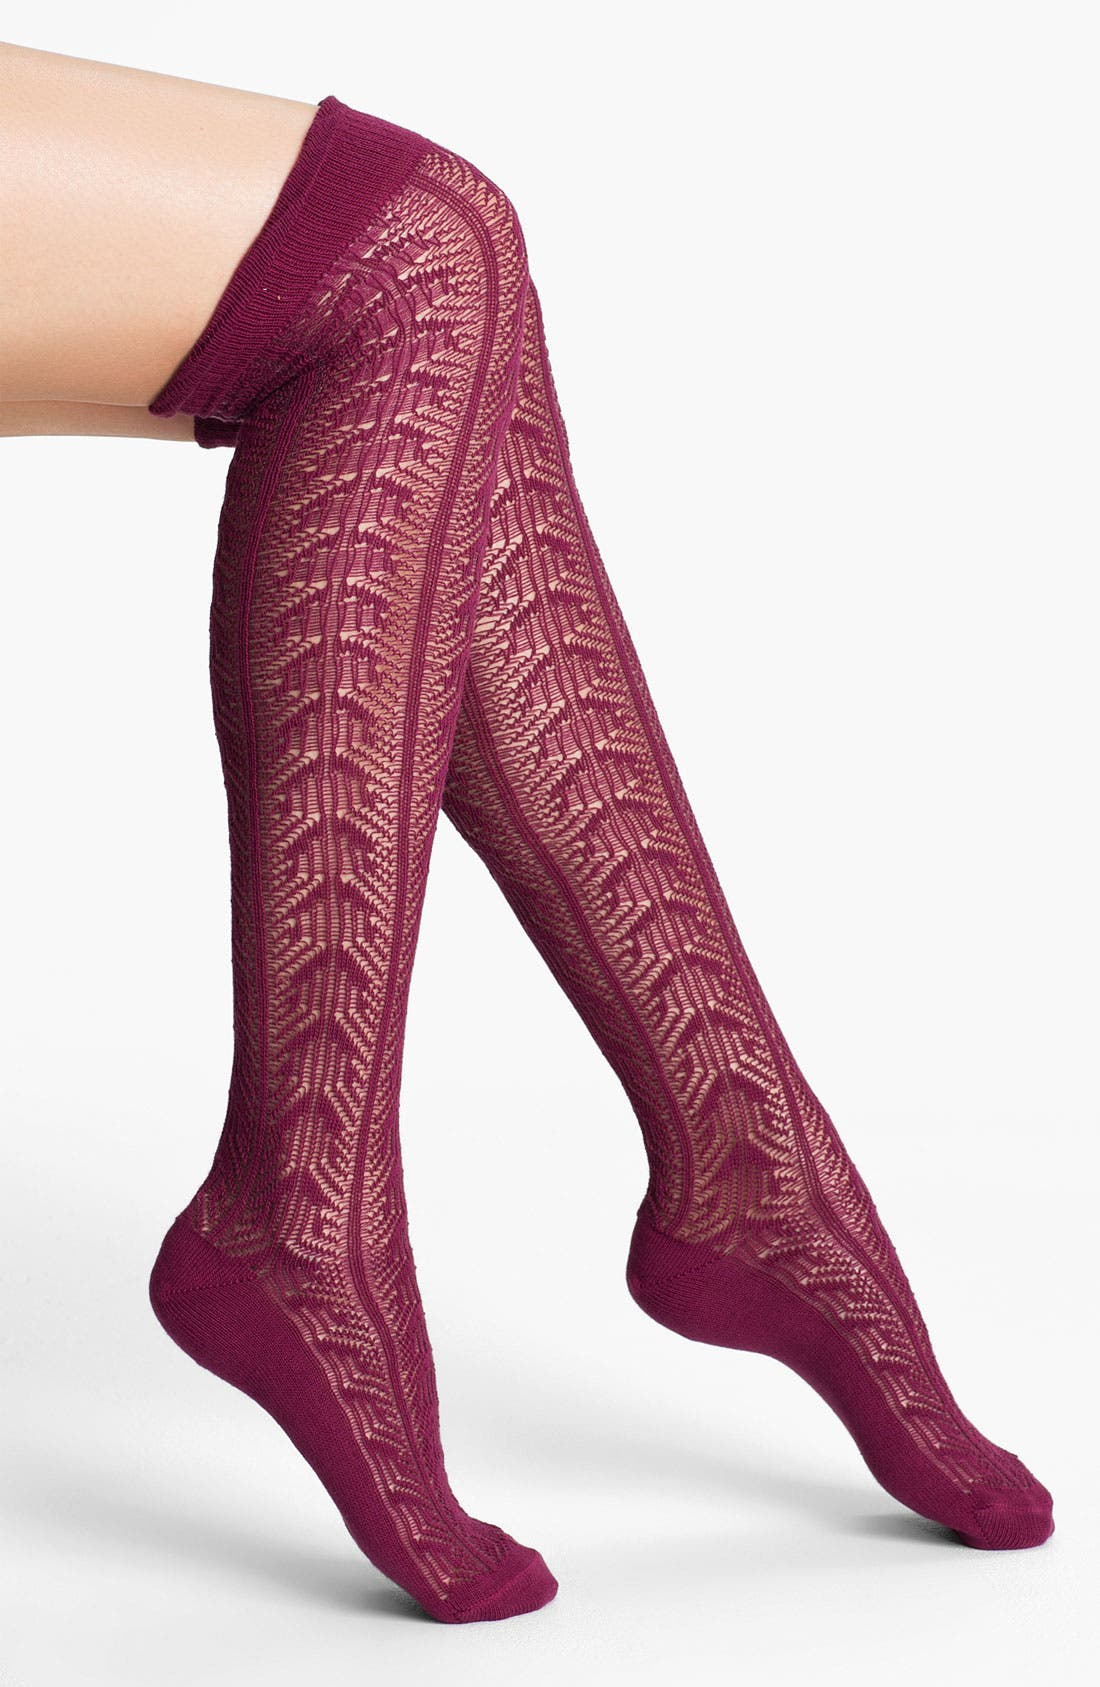 Alternate Image 1 Selected - Nordstrom 'Frill of It' Over the Knee Socks